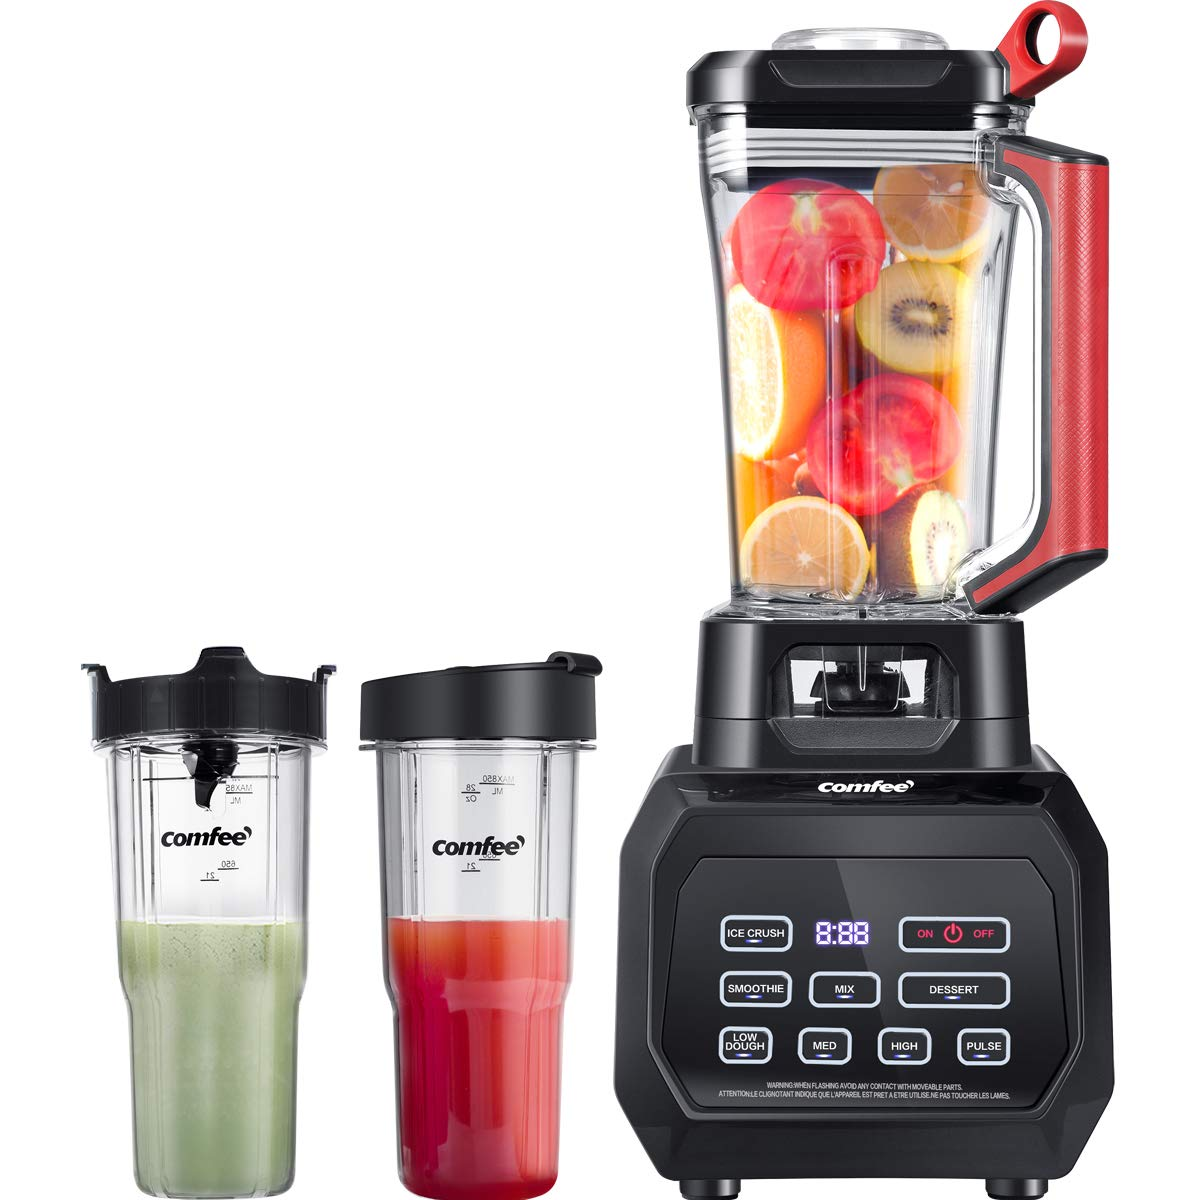 COMFEE BL2532 Professional Blender Smoothie Blender, 70oz Clear Tritan Pitcher Countertop Blender and 2 28oz Boottles Personal Blender with 1500-Watt Base for Shakes and Smoothies